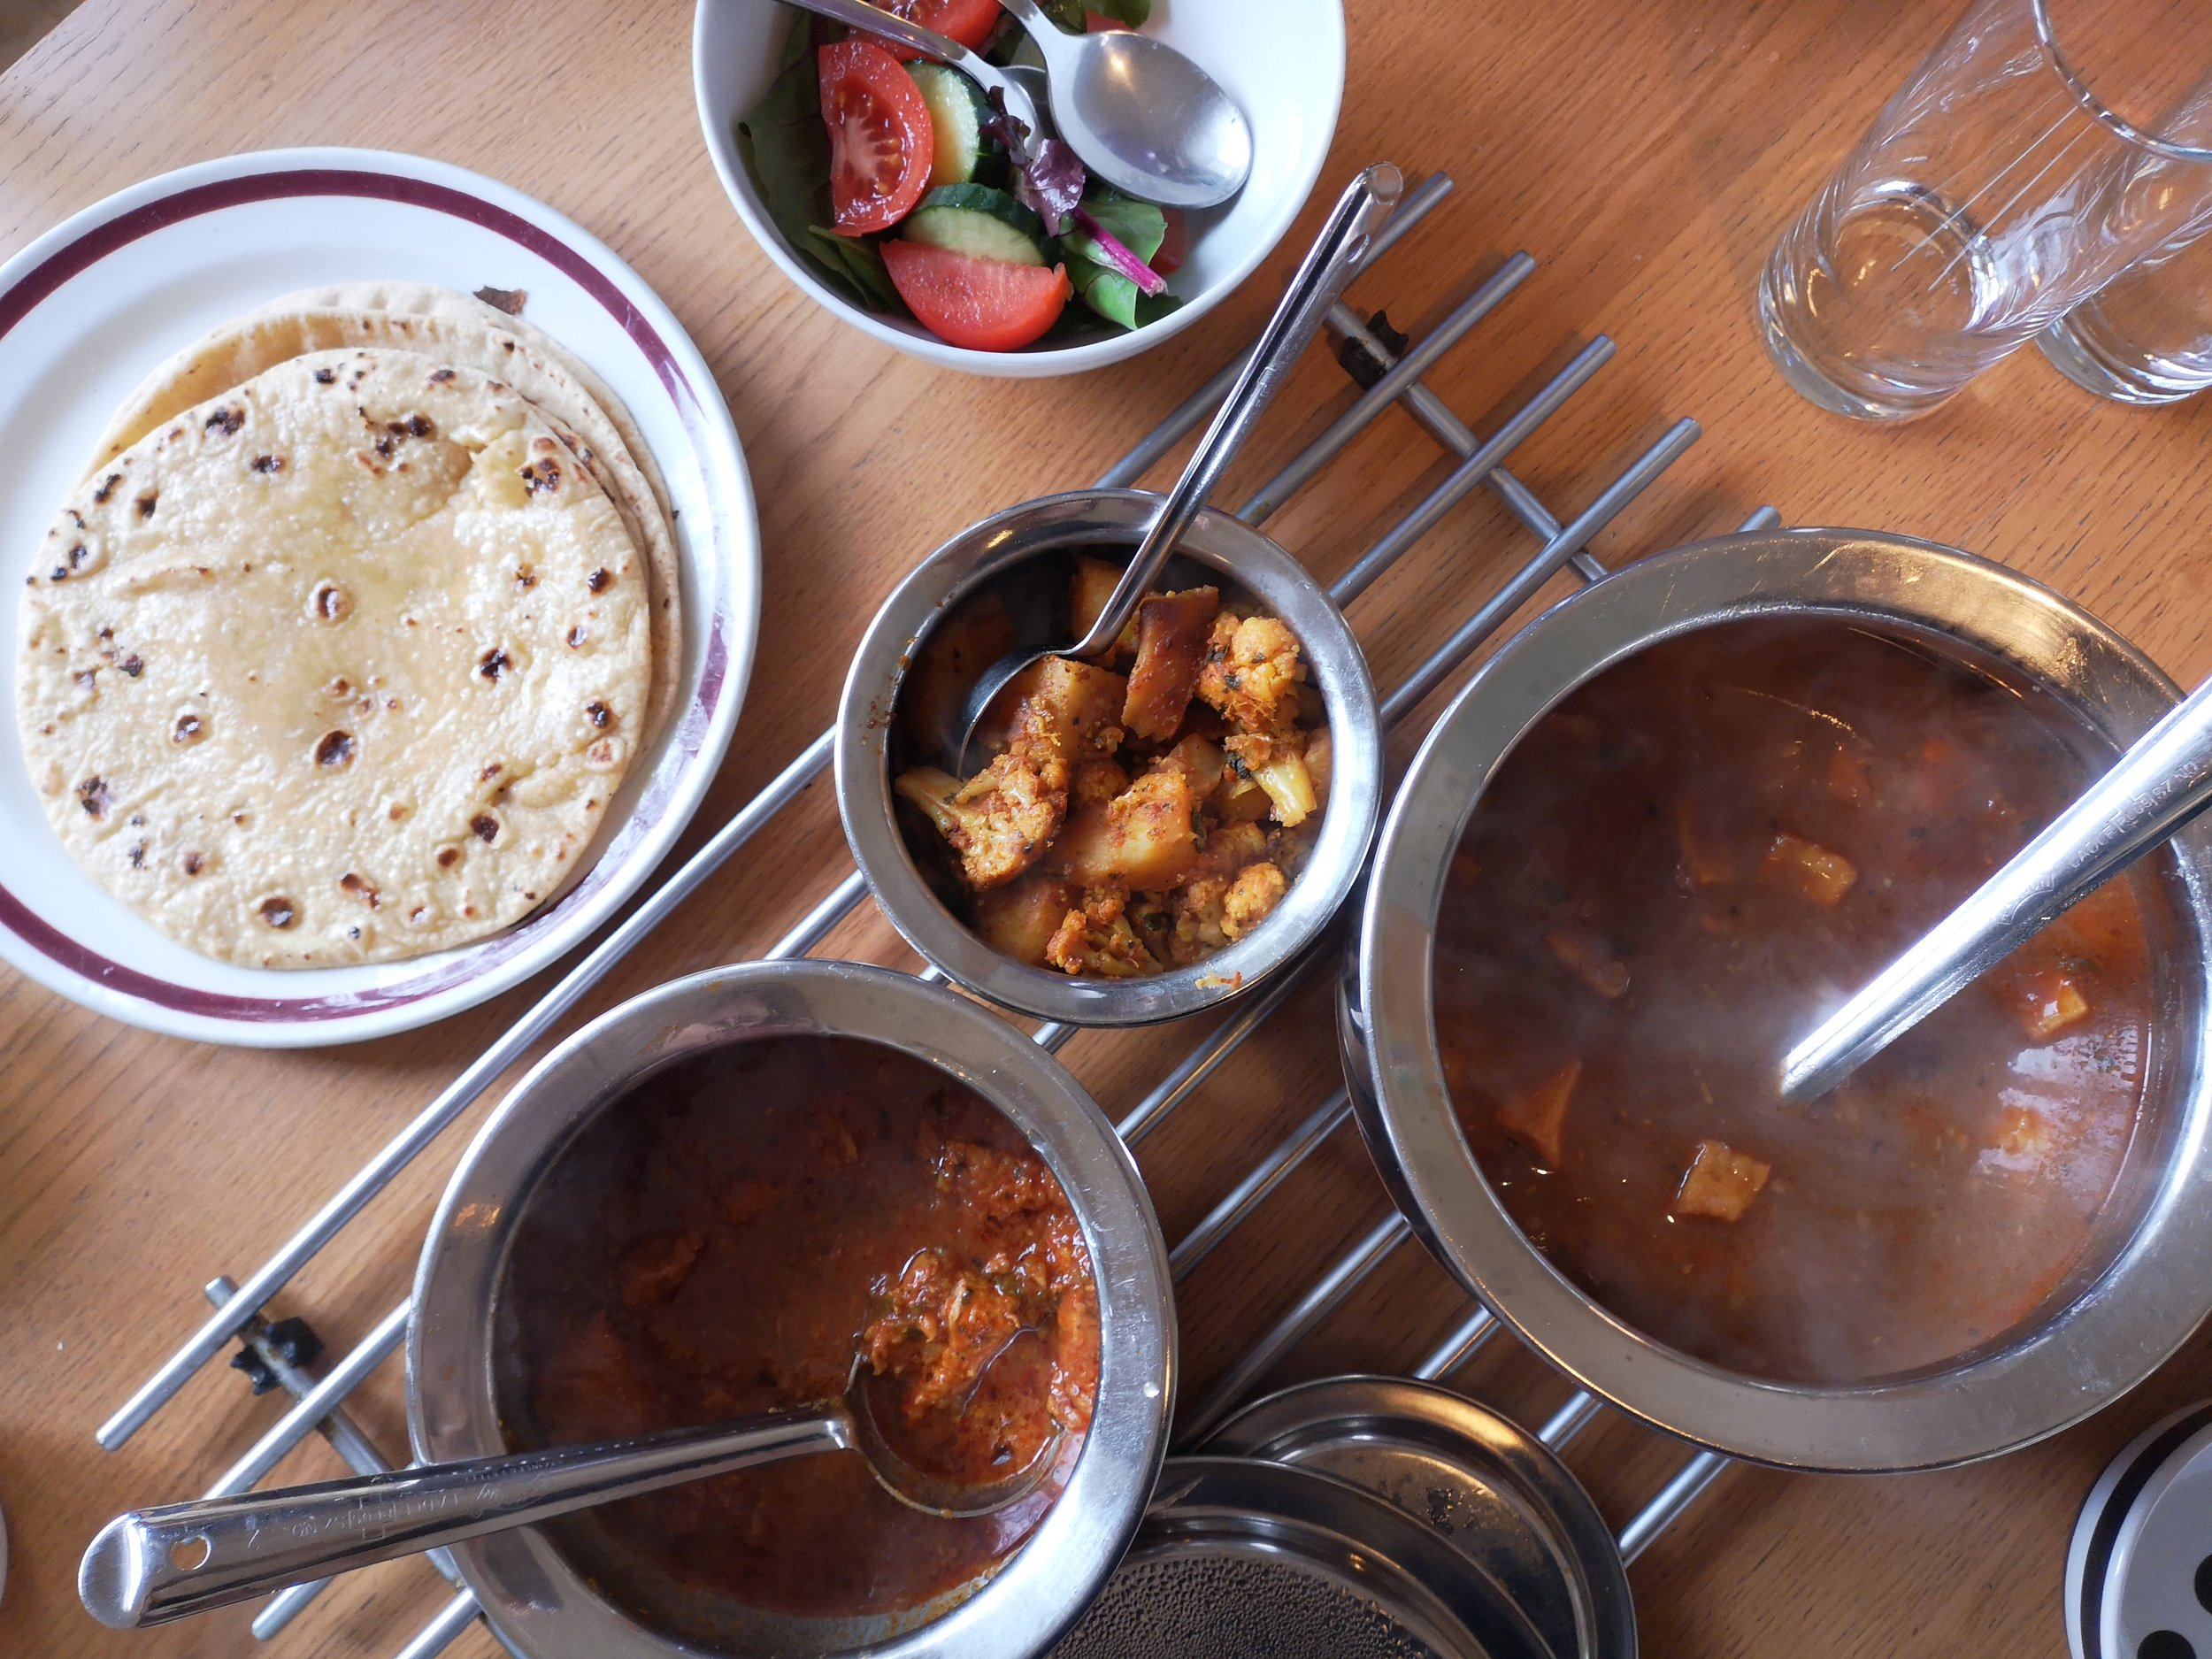 Brij normally serves chicken curry with a couple of other dishes such as aloo gobi and dahl